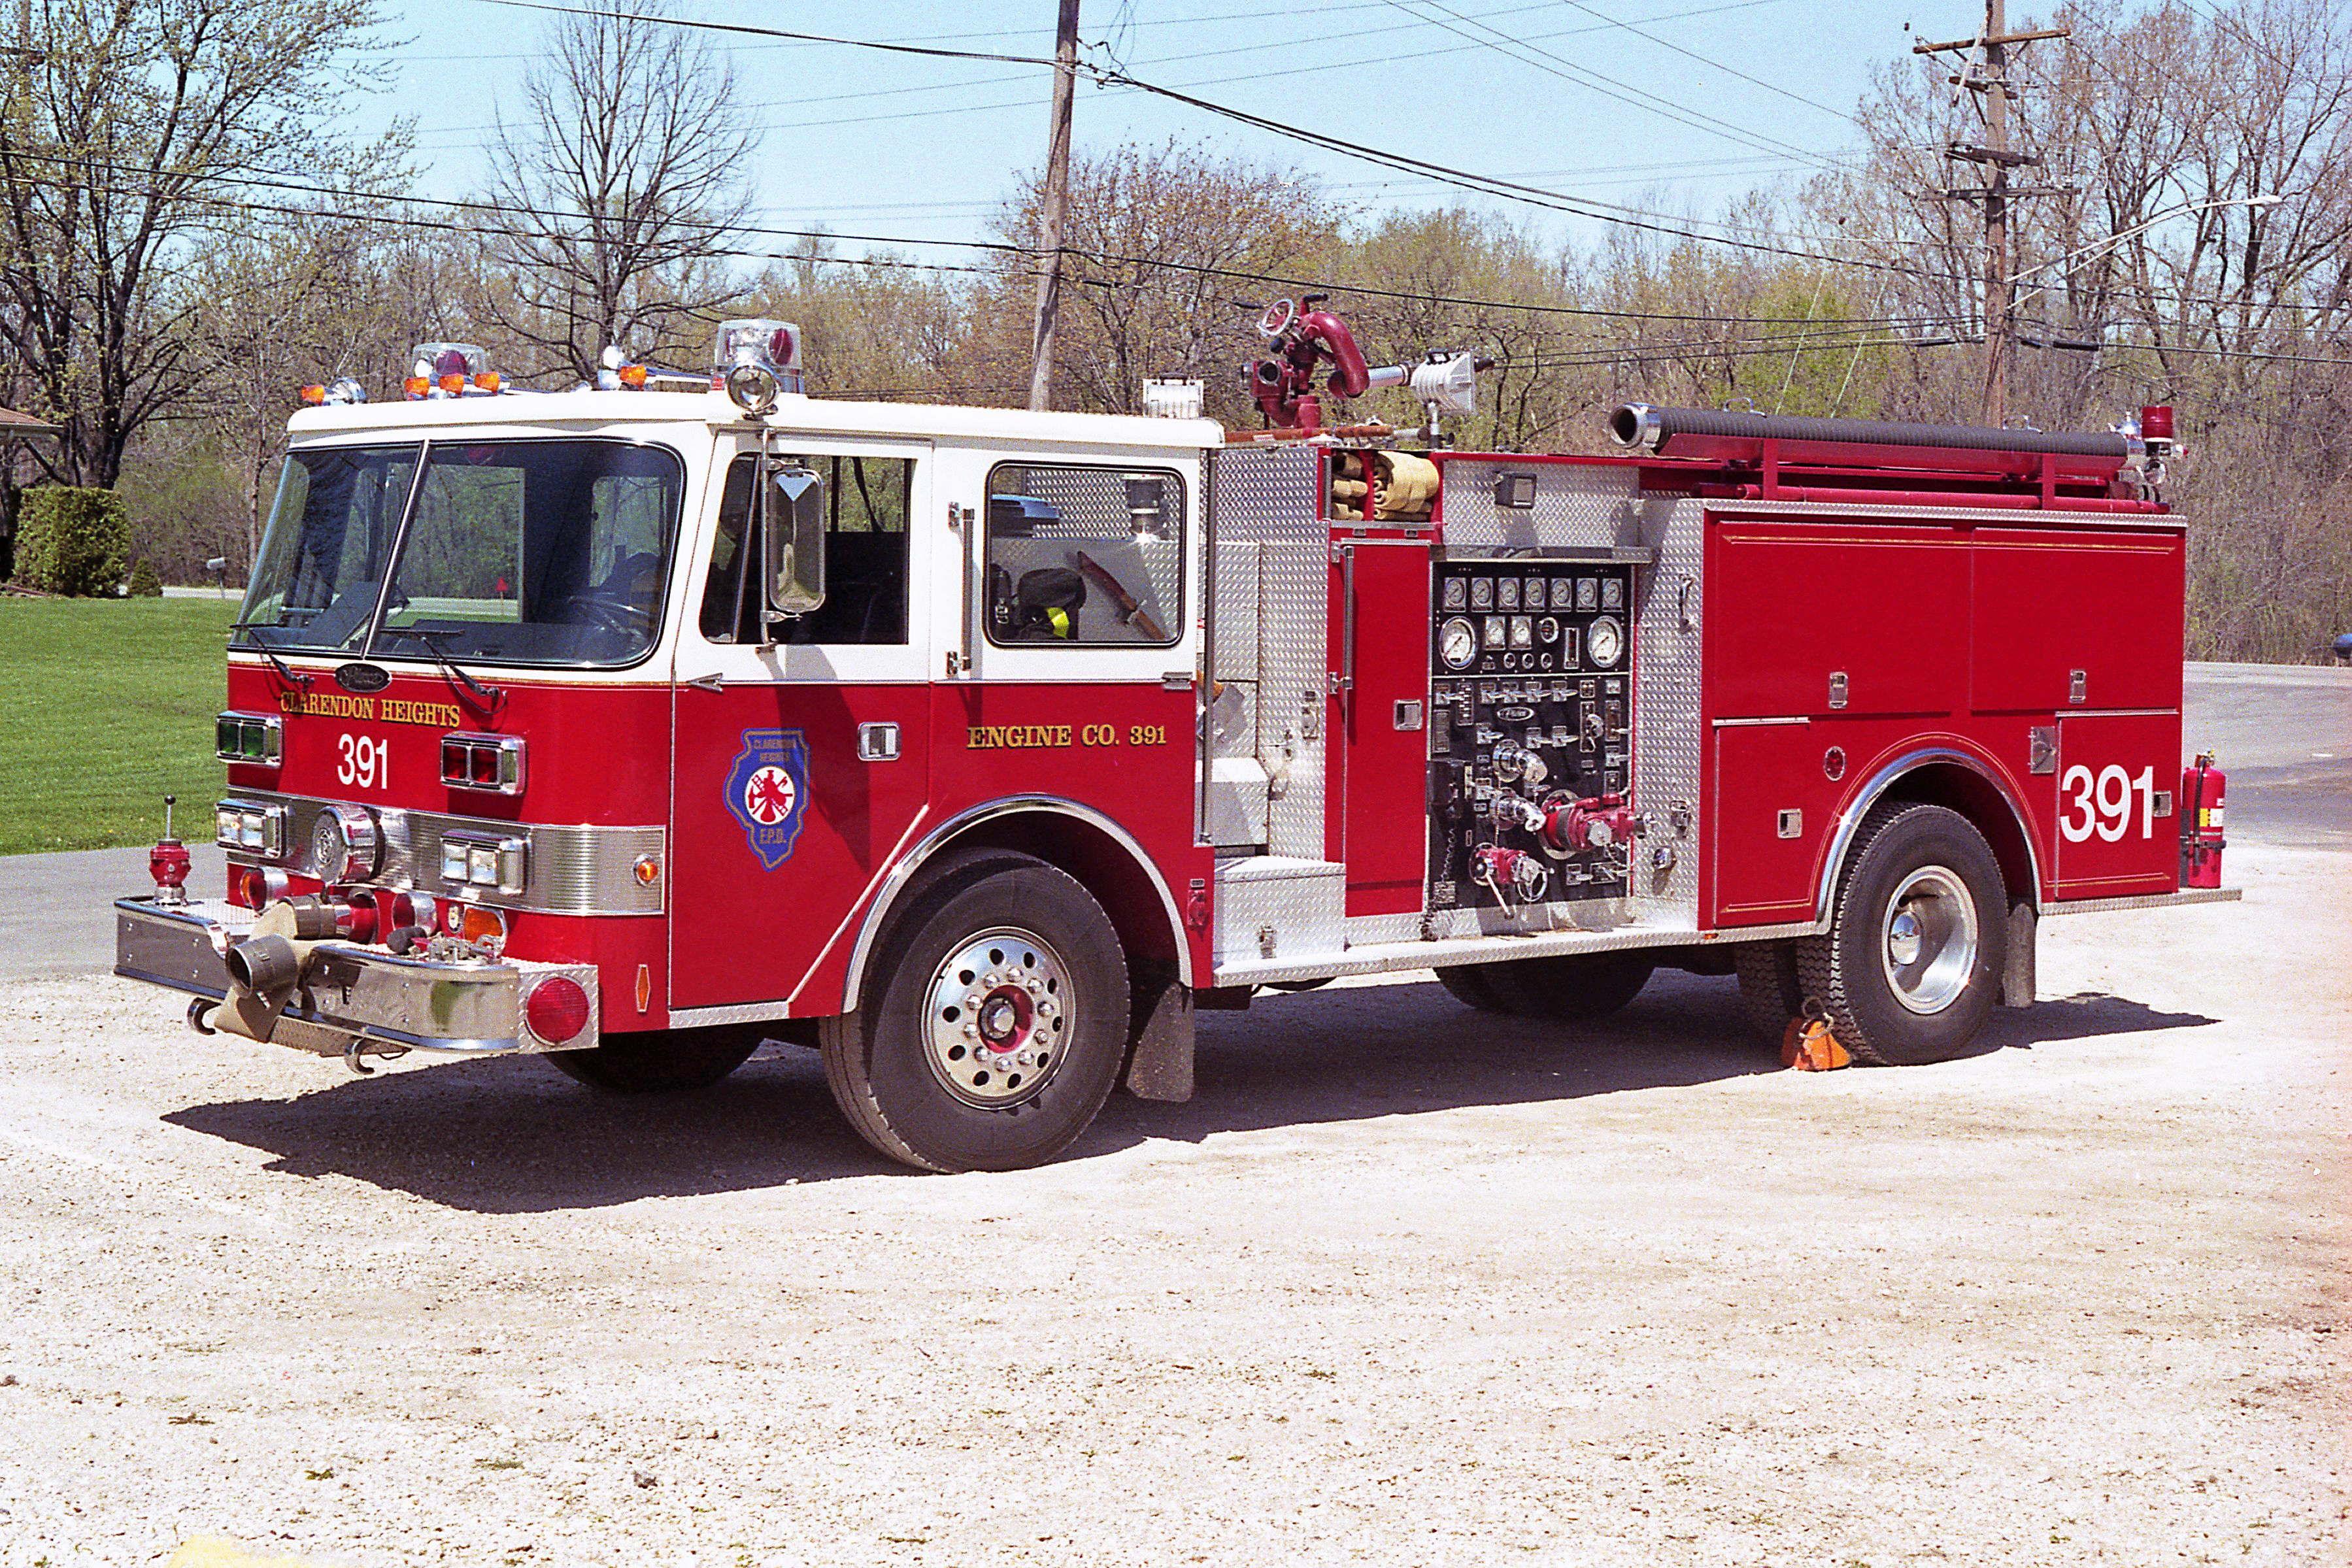 CLARENDON HEIGHTS ENGINE 391 1985 PIERCE ARROW 1500-750 # E-2558 - NOW TRI STATE ENGINE 541